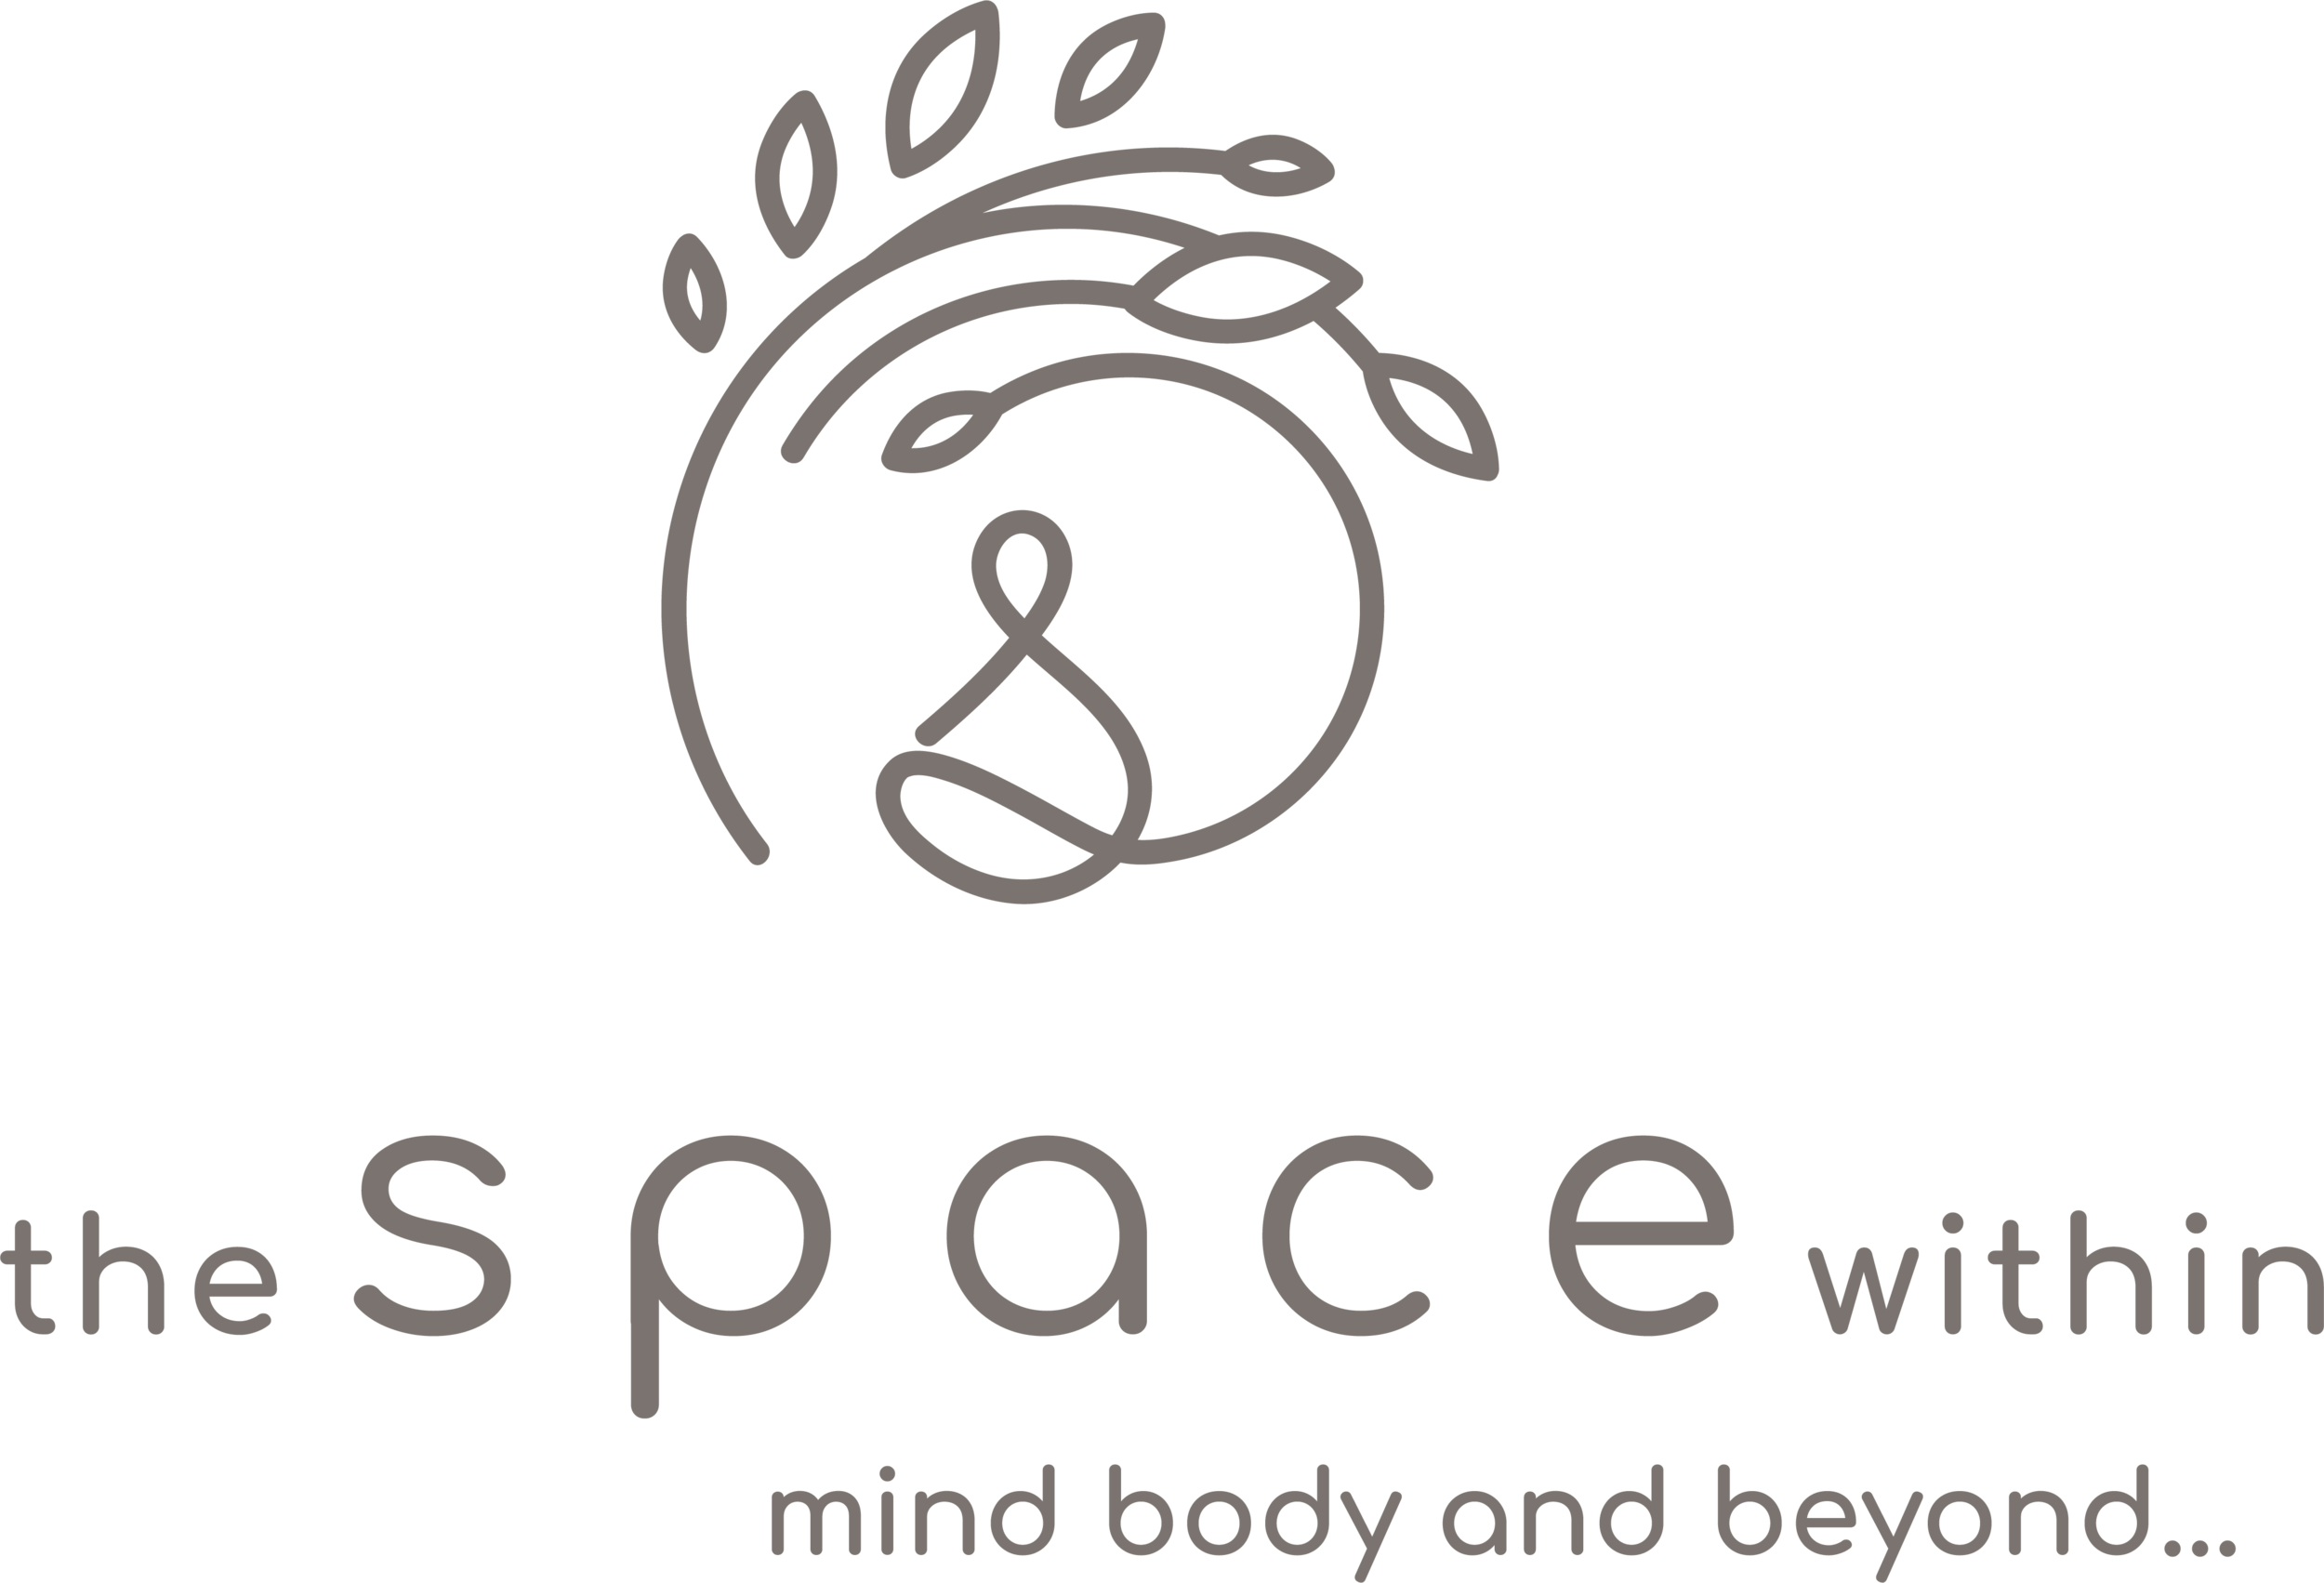 TheSpaceWithin_LOGO_TAGLINE._ALLeps-03.png